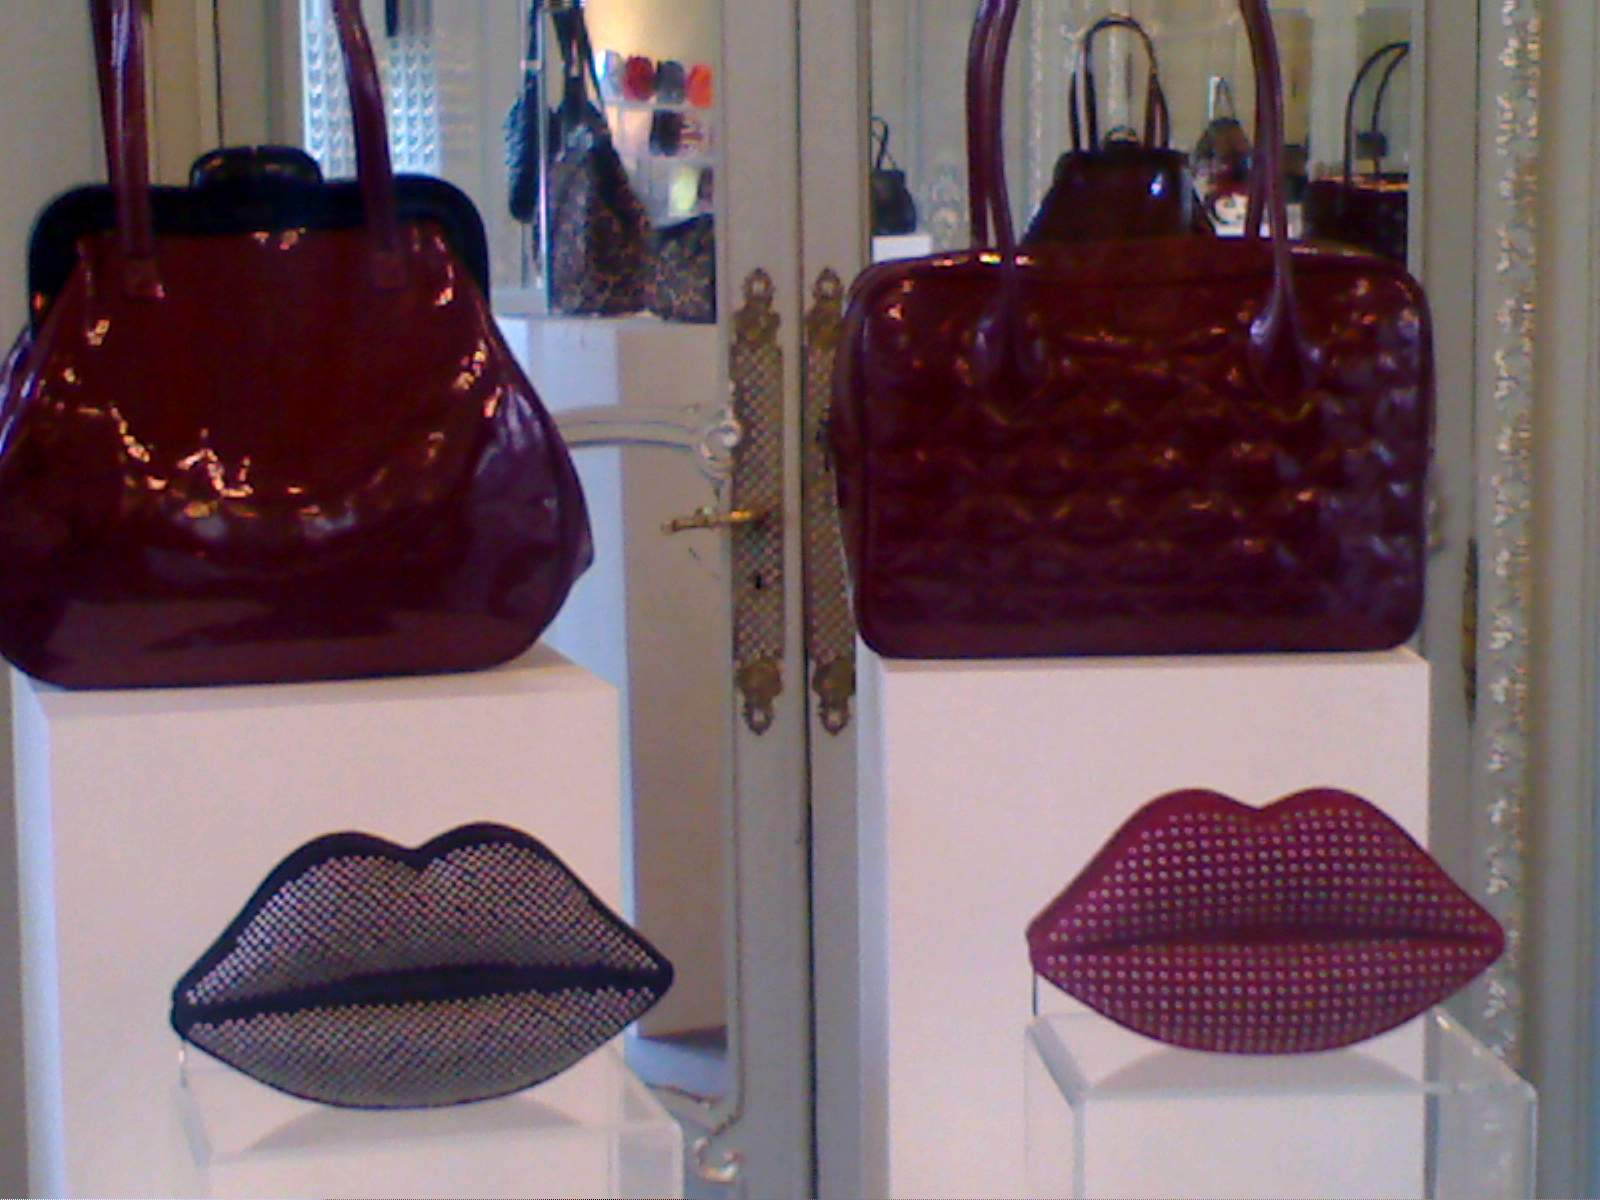 Lulu S Lips Clutches Also Get An Edgy Make Over With The Studs There Is Classic Black And Who Doesn T Want Cherry Bright Red Quilted